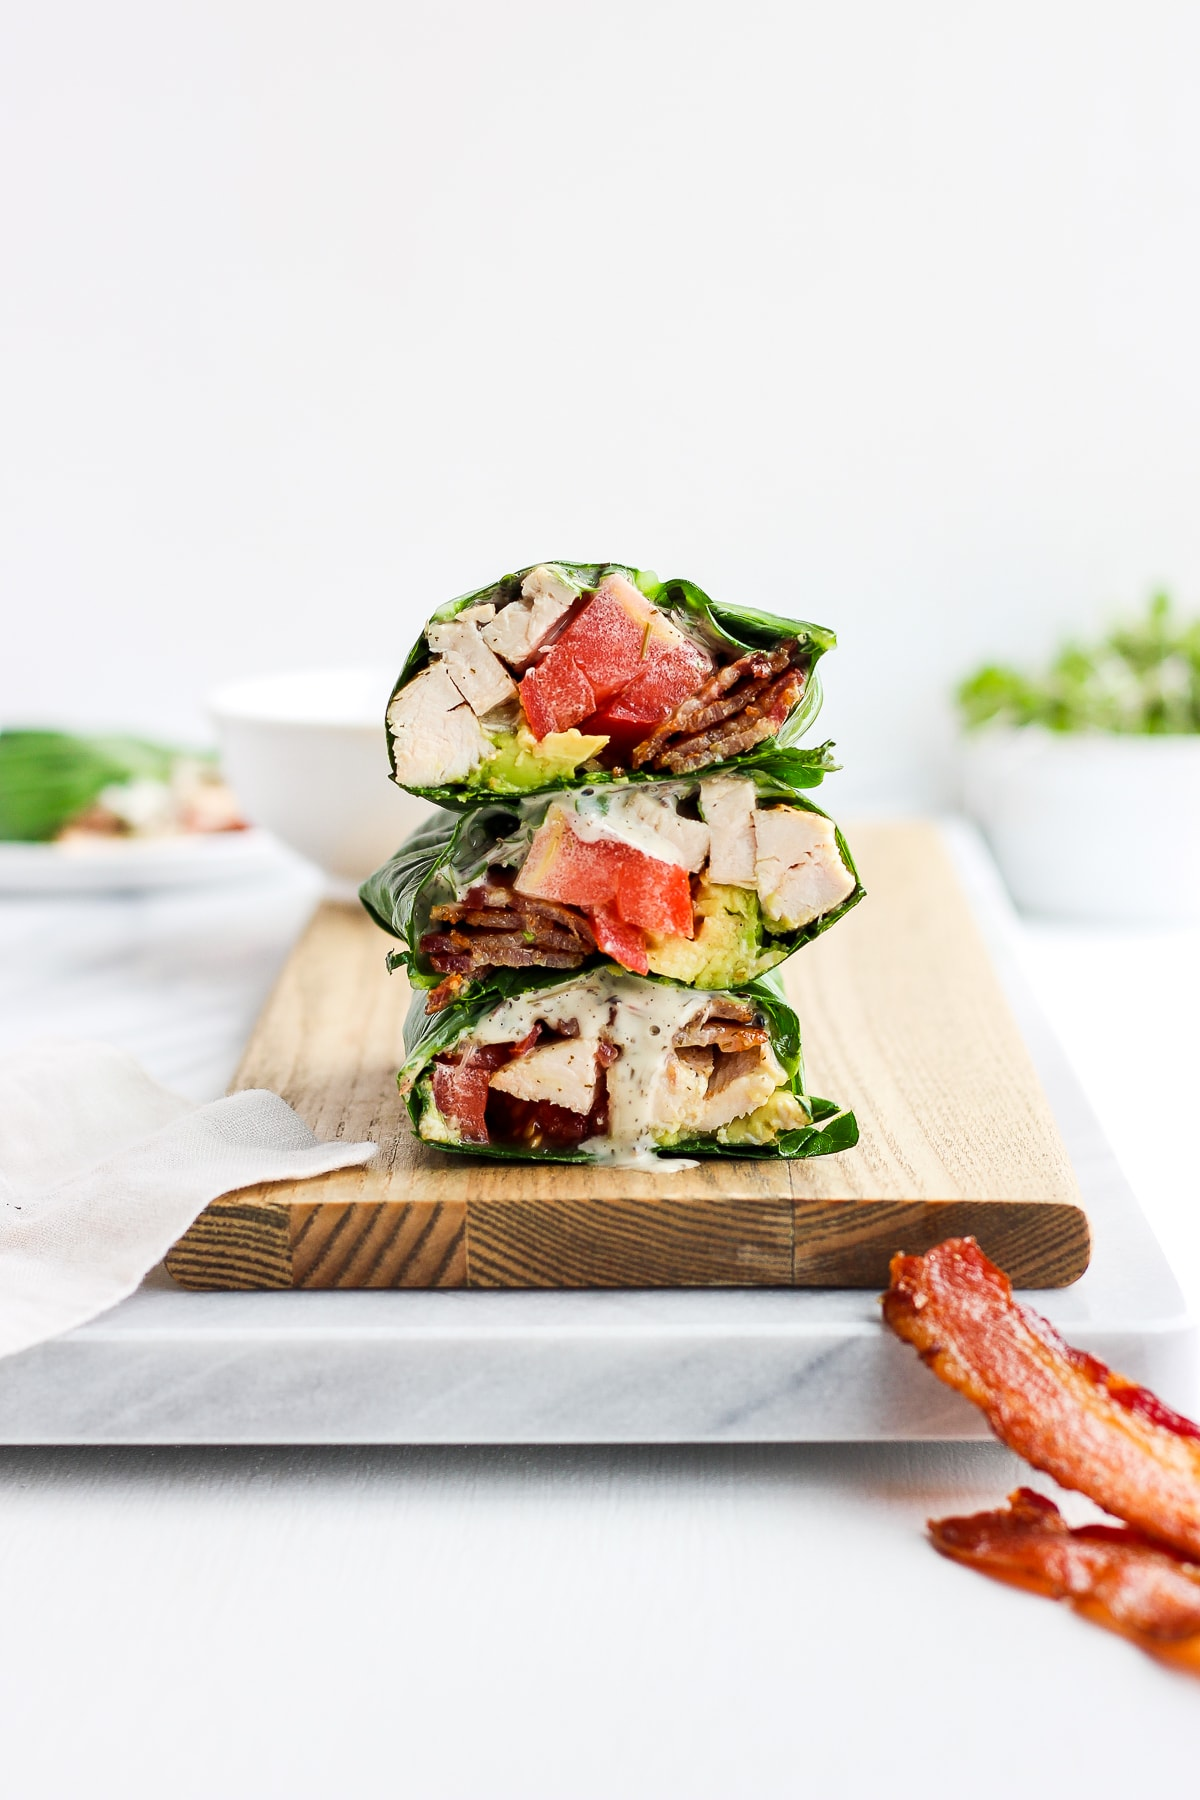 Chicken Bacon Club Collard Green Wrap - a lightened up version of your classic chicken club, but Whole30 and Paleo friendly! #whole30 #paleo